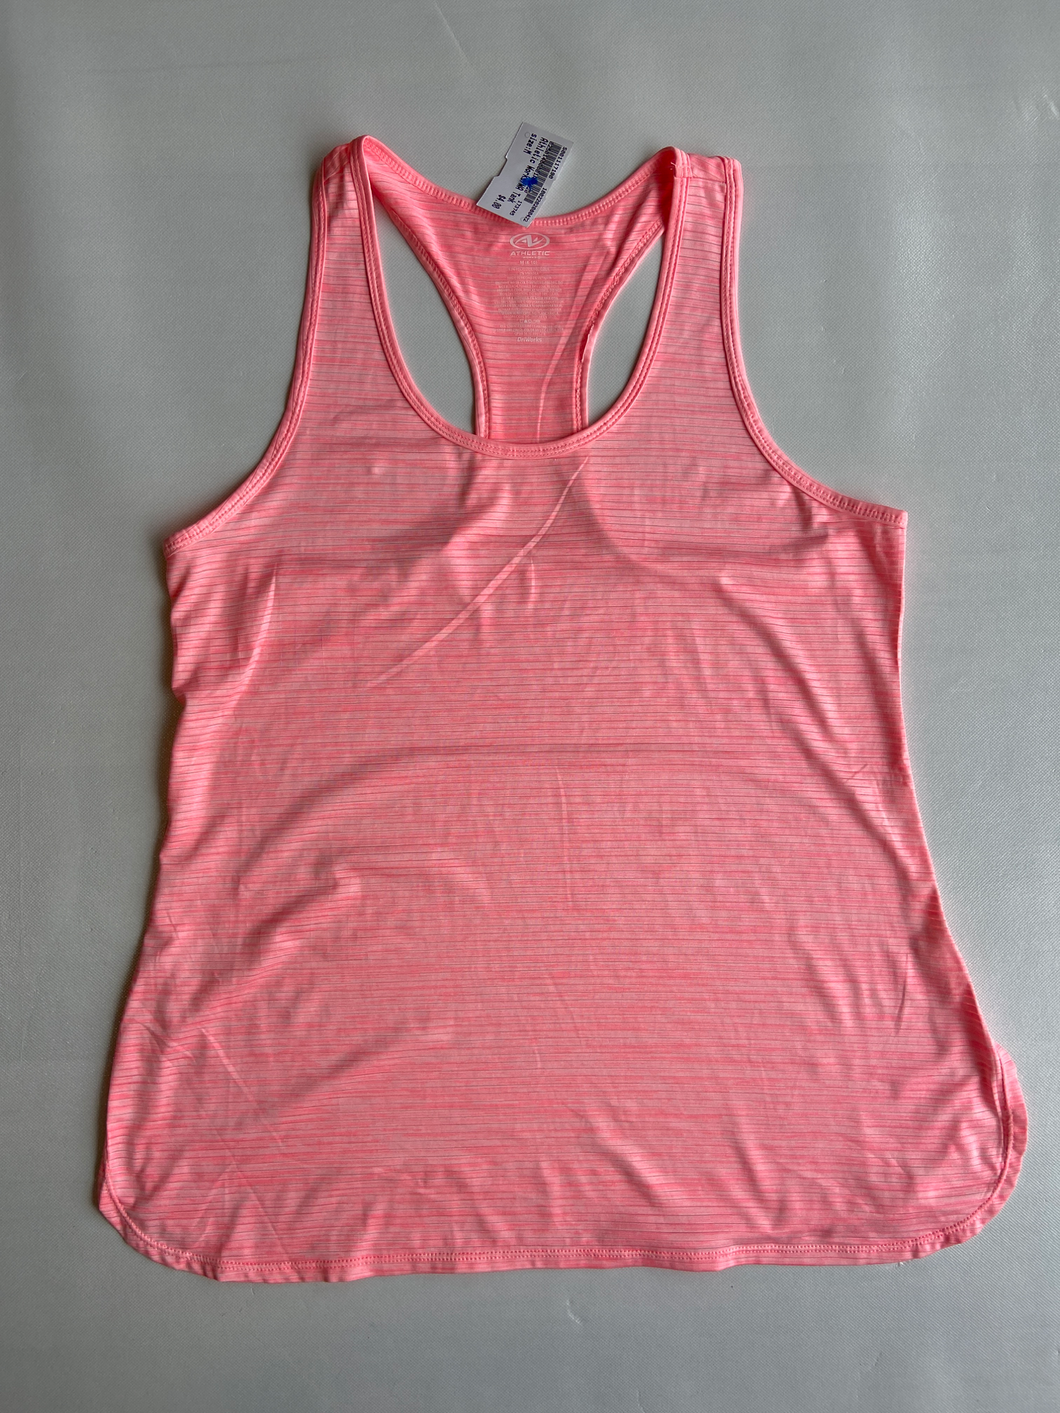 Athletic Works Athletic Top Size Medium